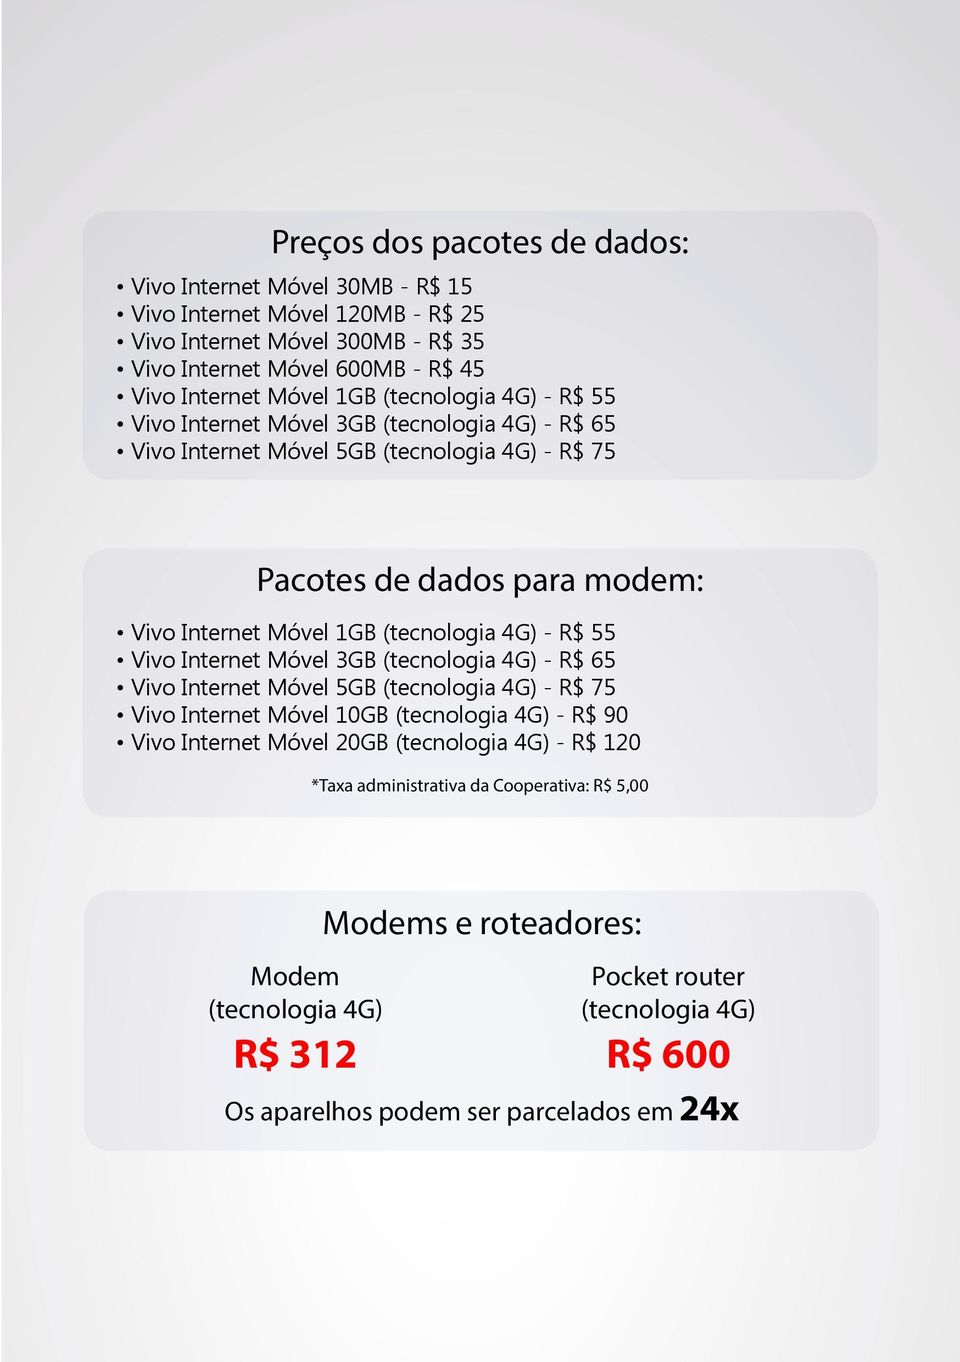 4G) - R$ 55 Vivo Internet Móvel 3GB (tecnologia 4G) - R$ 65 Vivo Internet Móvel 5GB (tecnologia 4G) - R$ 75 Vivo Internet Móvel 10GB (tecnologia 4G) - R$ 90 Vivo Internet Móvel 20GB